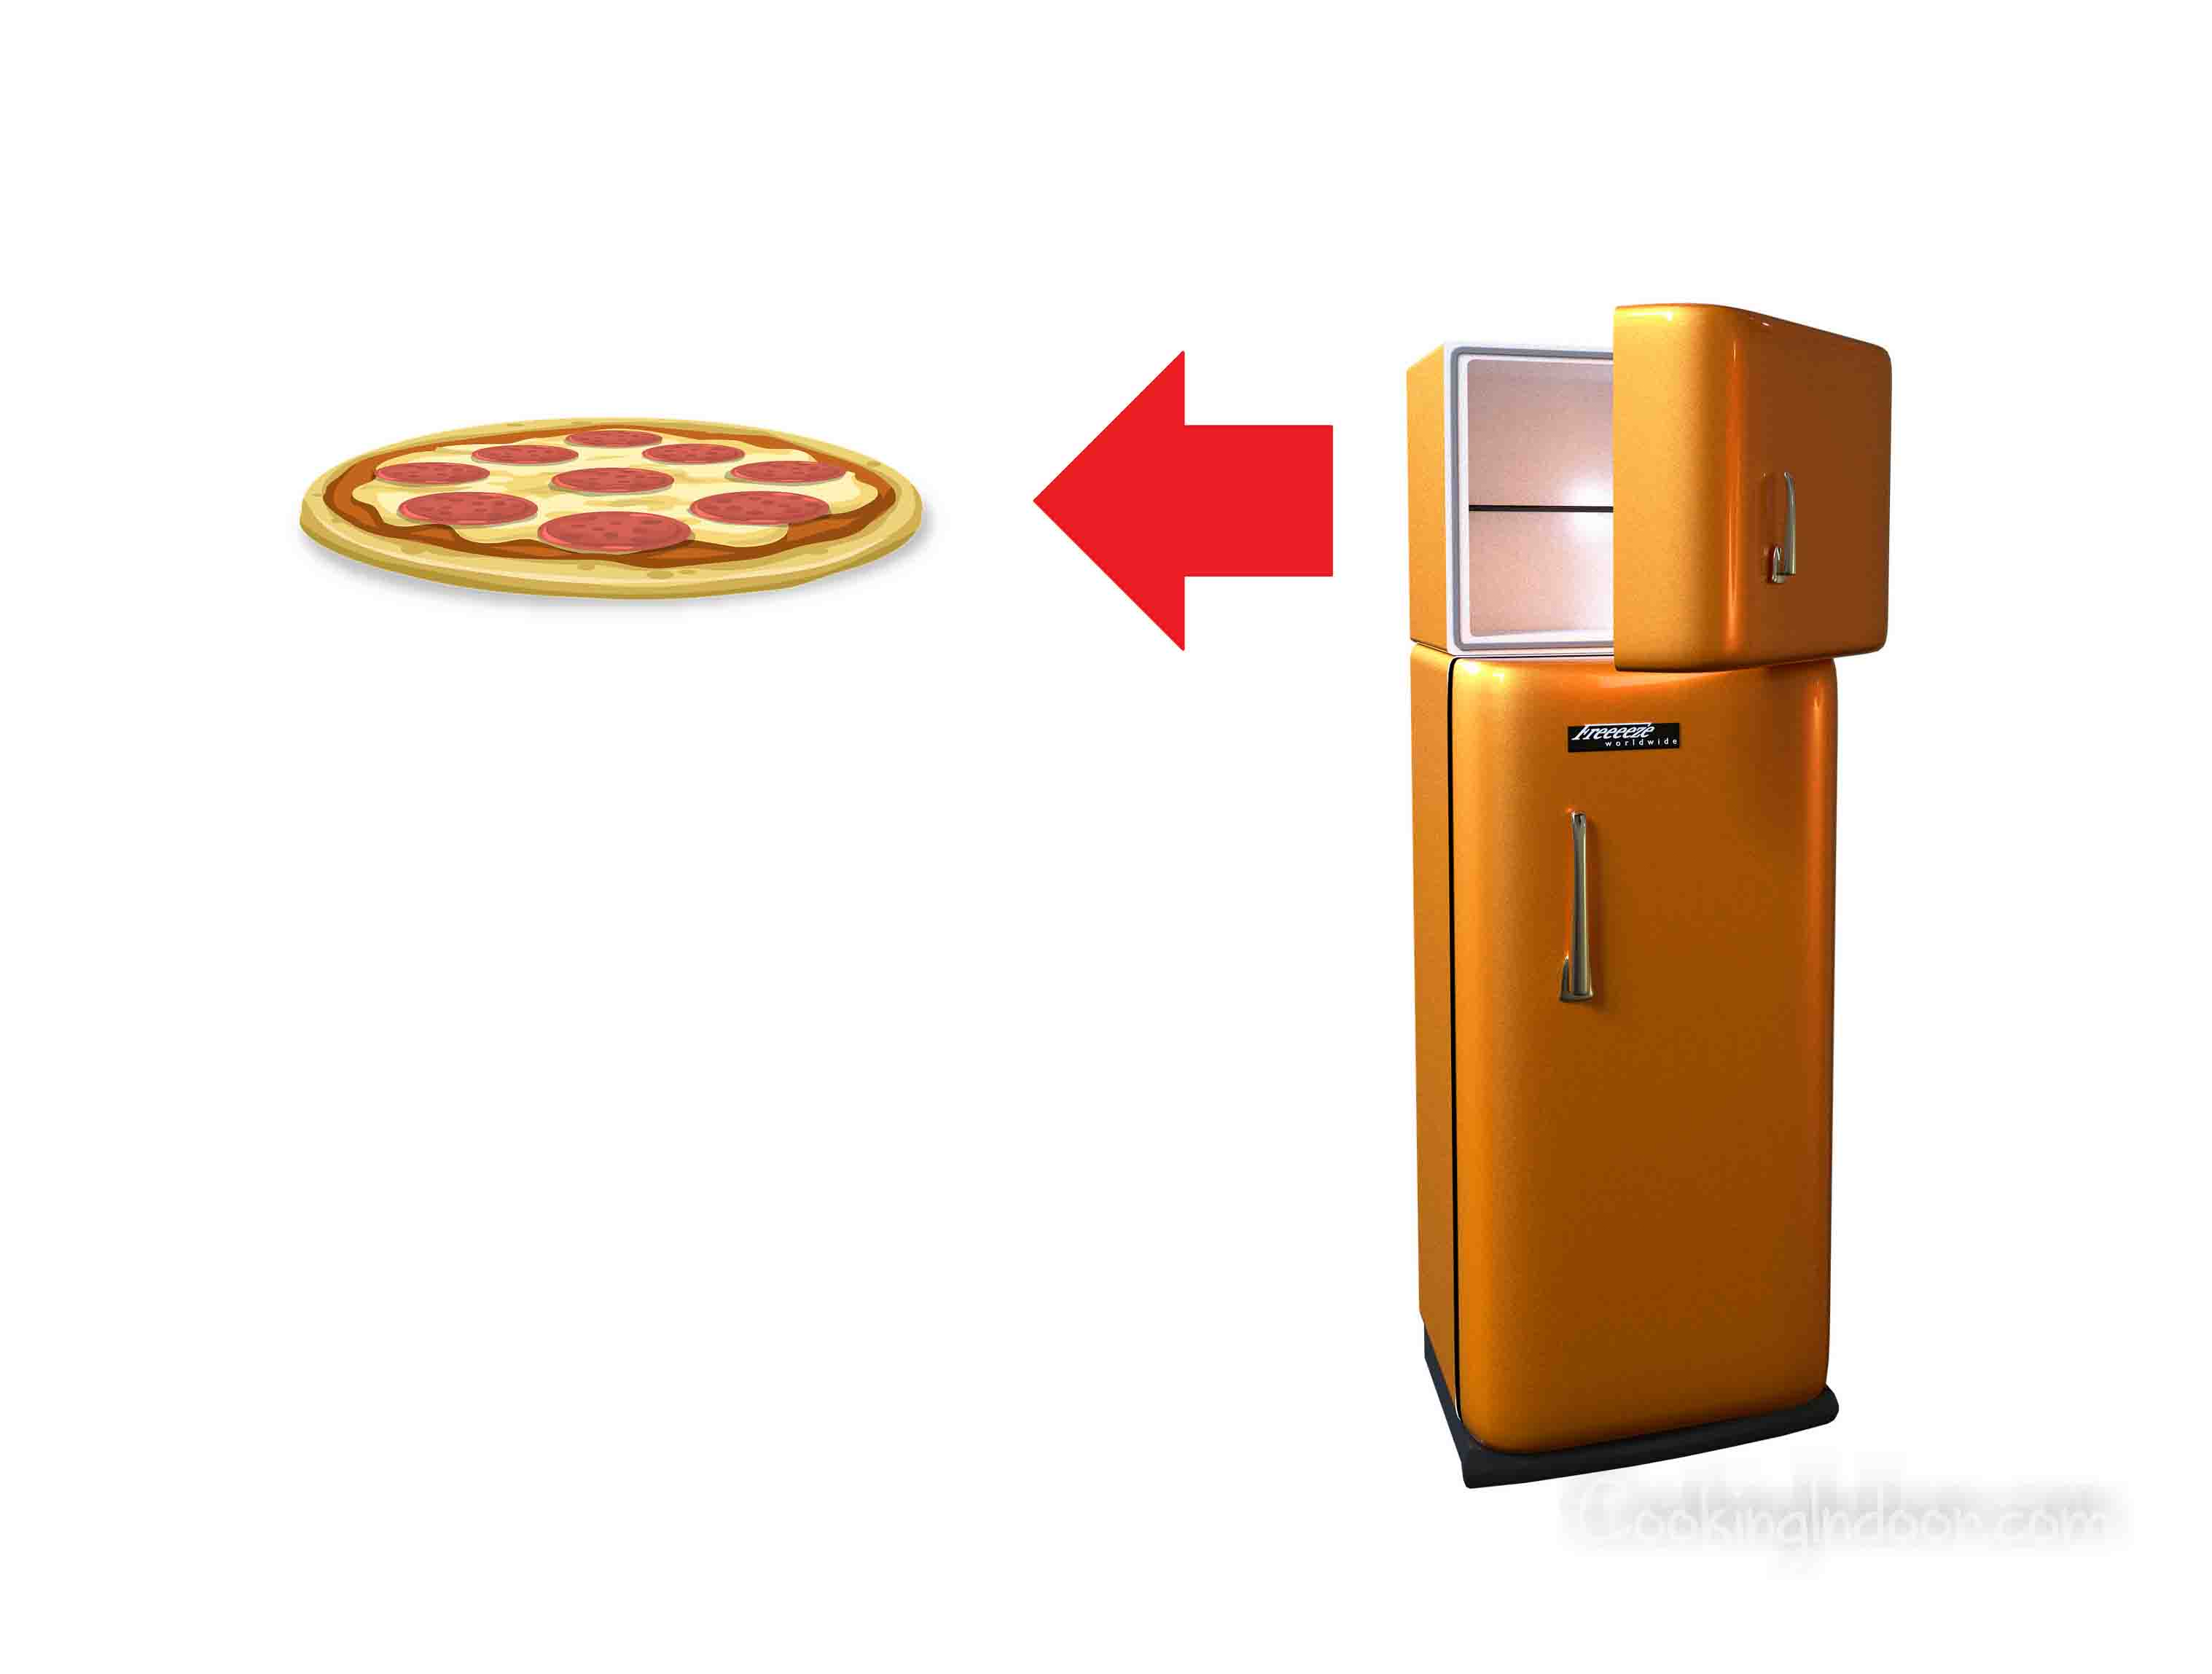 Frozen pizza in toaster oven